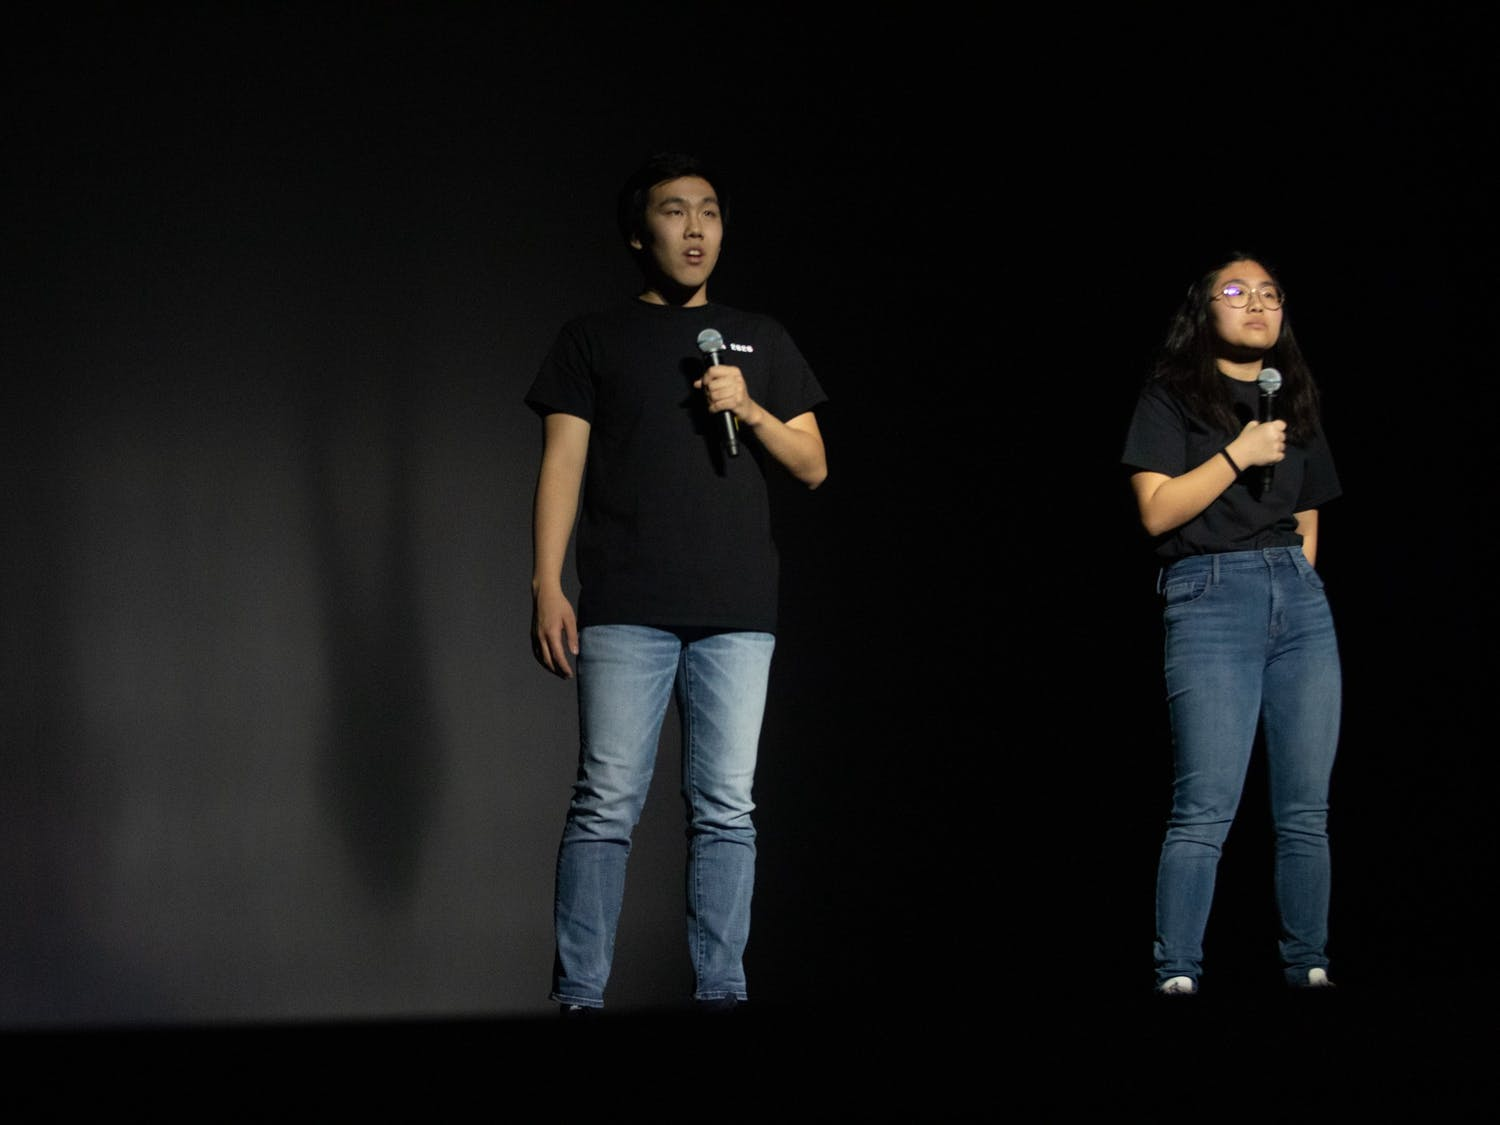 Andy Liu (left) and Emily Kang (right) perform spoken word poetry at Journey Into Asia at Memorial Hall on Saturday, Feb. 29, 2020. Liu and Kang delivered a poem originally written by Ins Choi in response to Asian American actors departing from the show Hawaii Five-O because of a wage gap between them and their white counterparts.